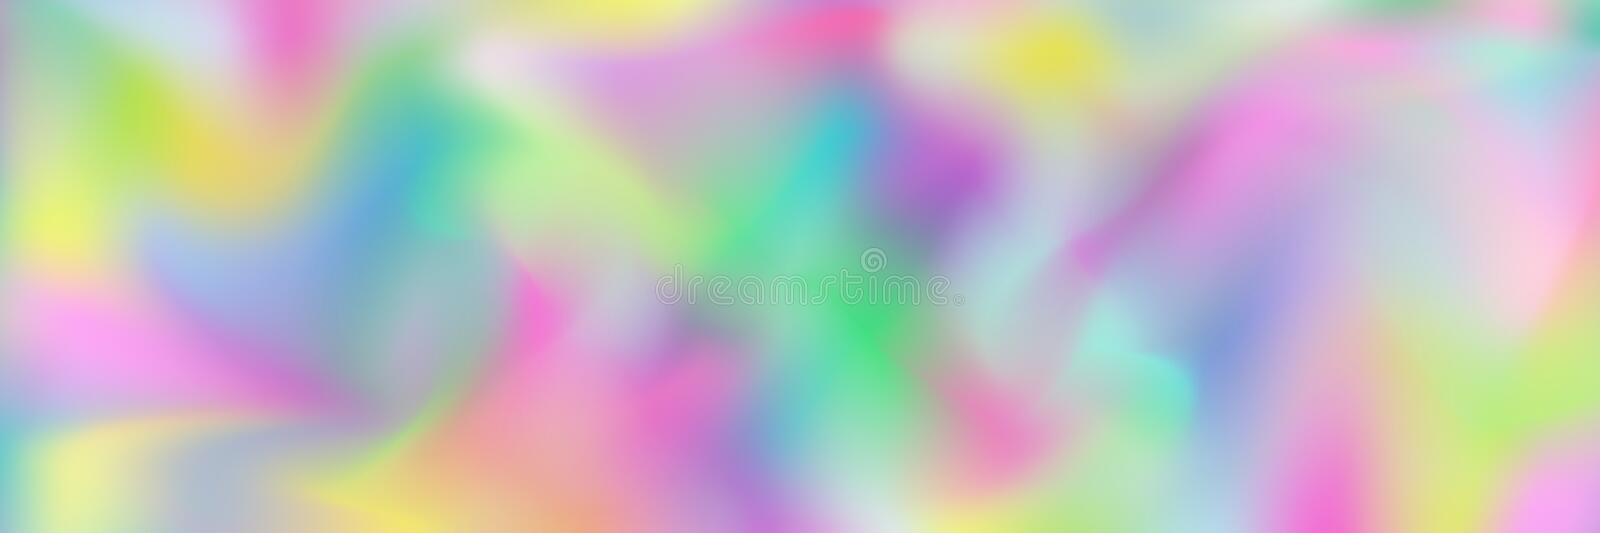 horizontal abstract pastel holographic texture design for pattern and background vector illustration